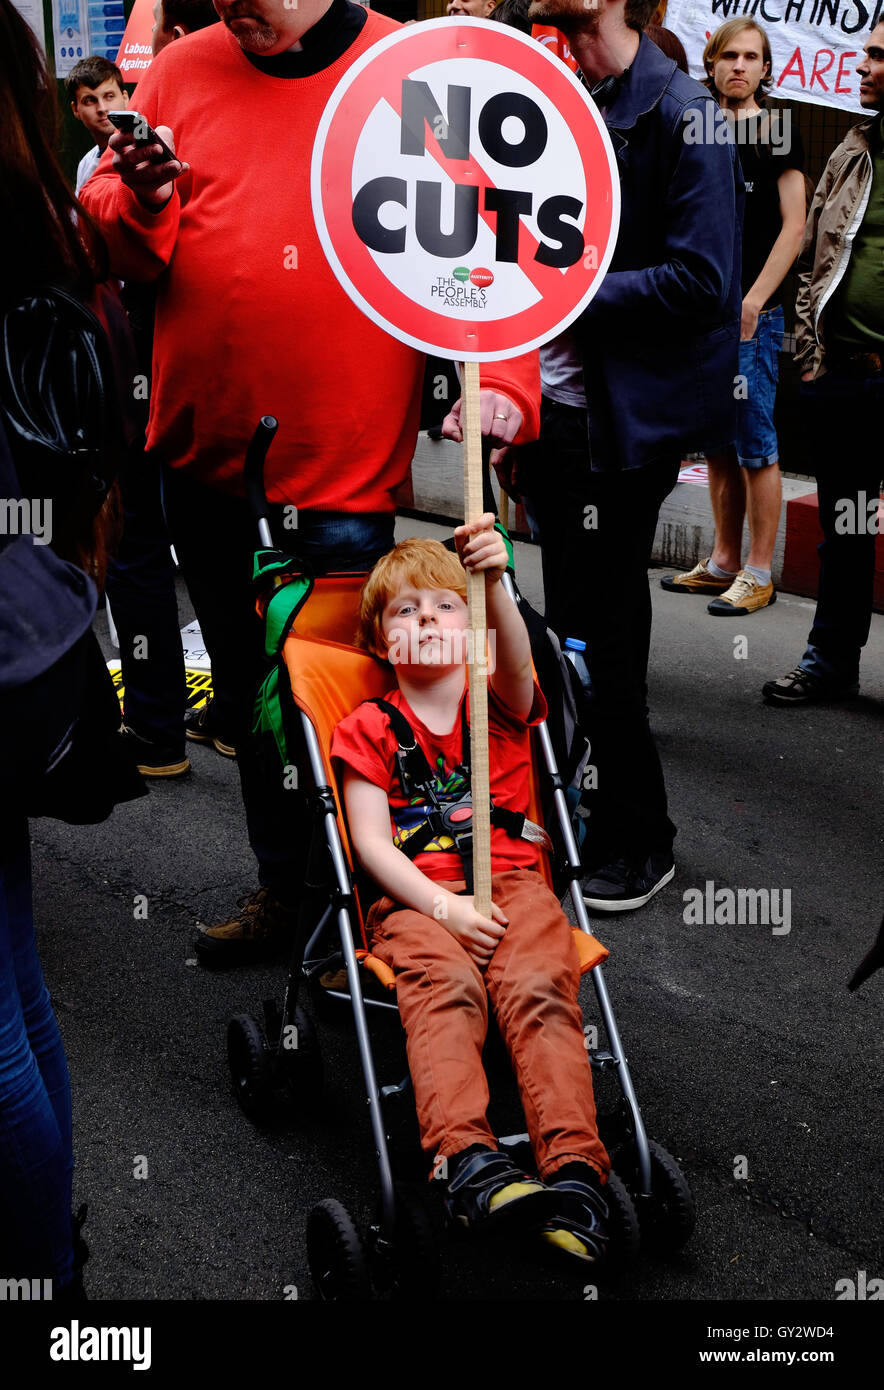 Young, red headed boy in a pushchair waves an anti-austerity placard at a protest in London  as his father checks - Stock Image